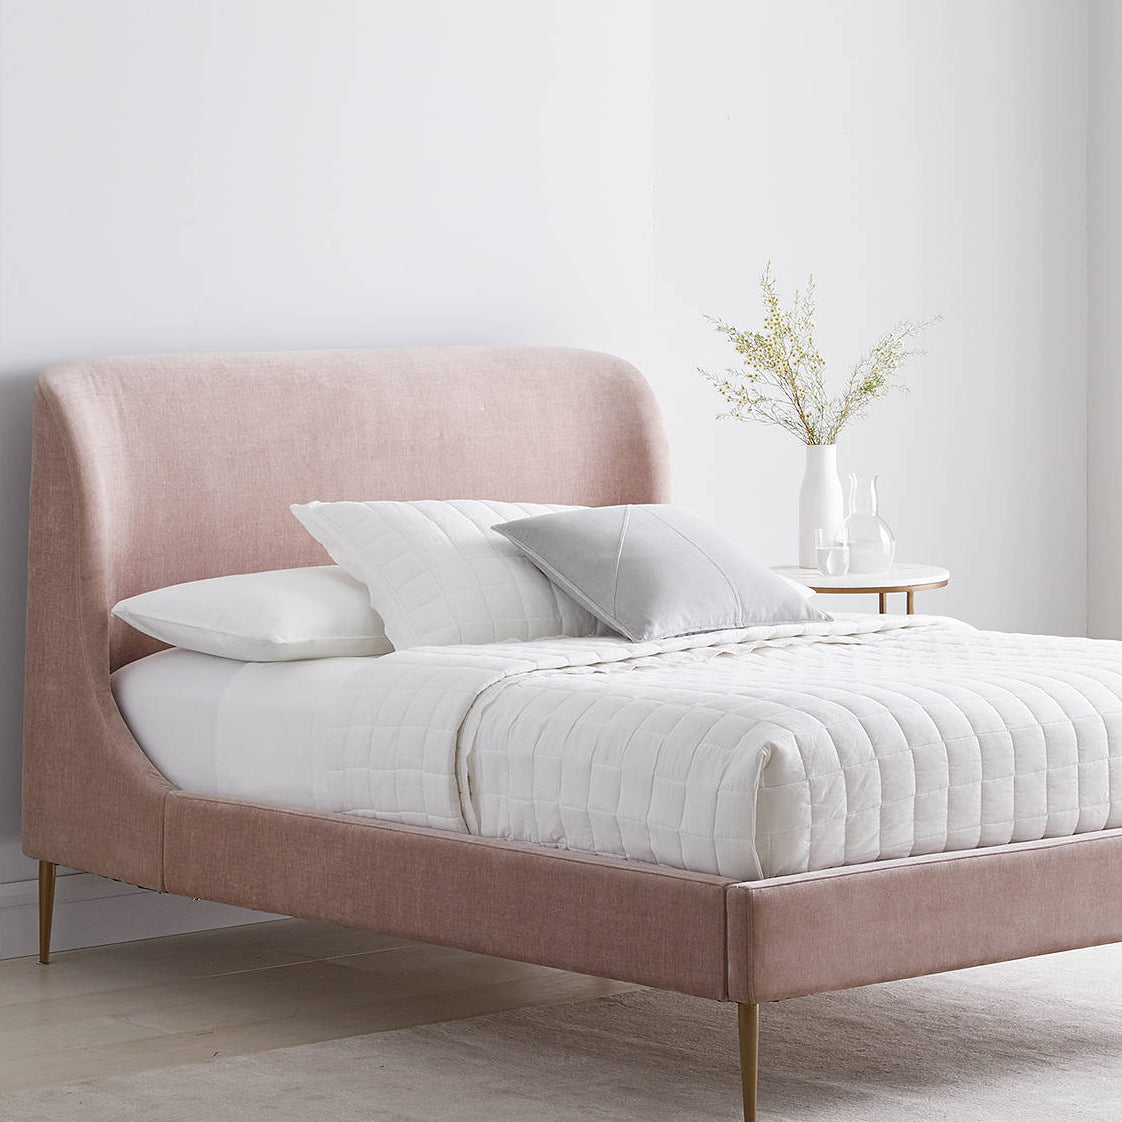 Lana Upholstered Bed Frame, Double, Light Pink